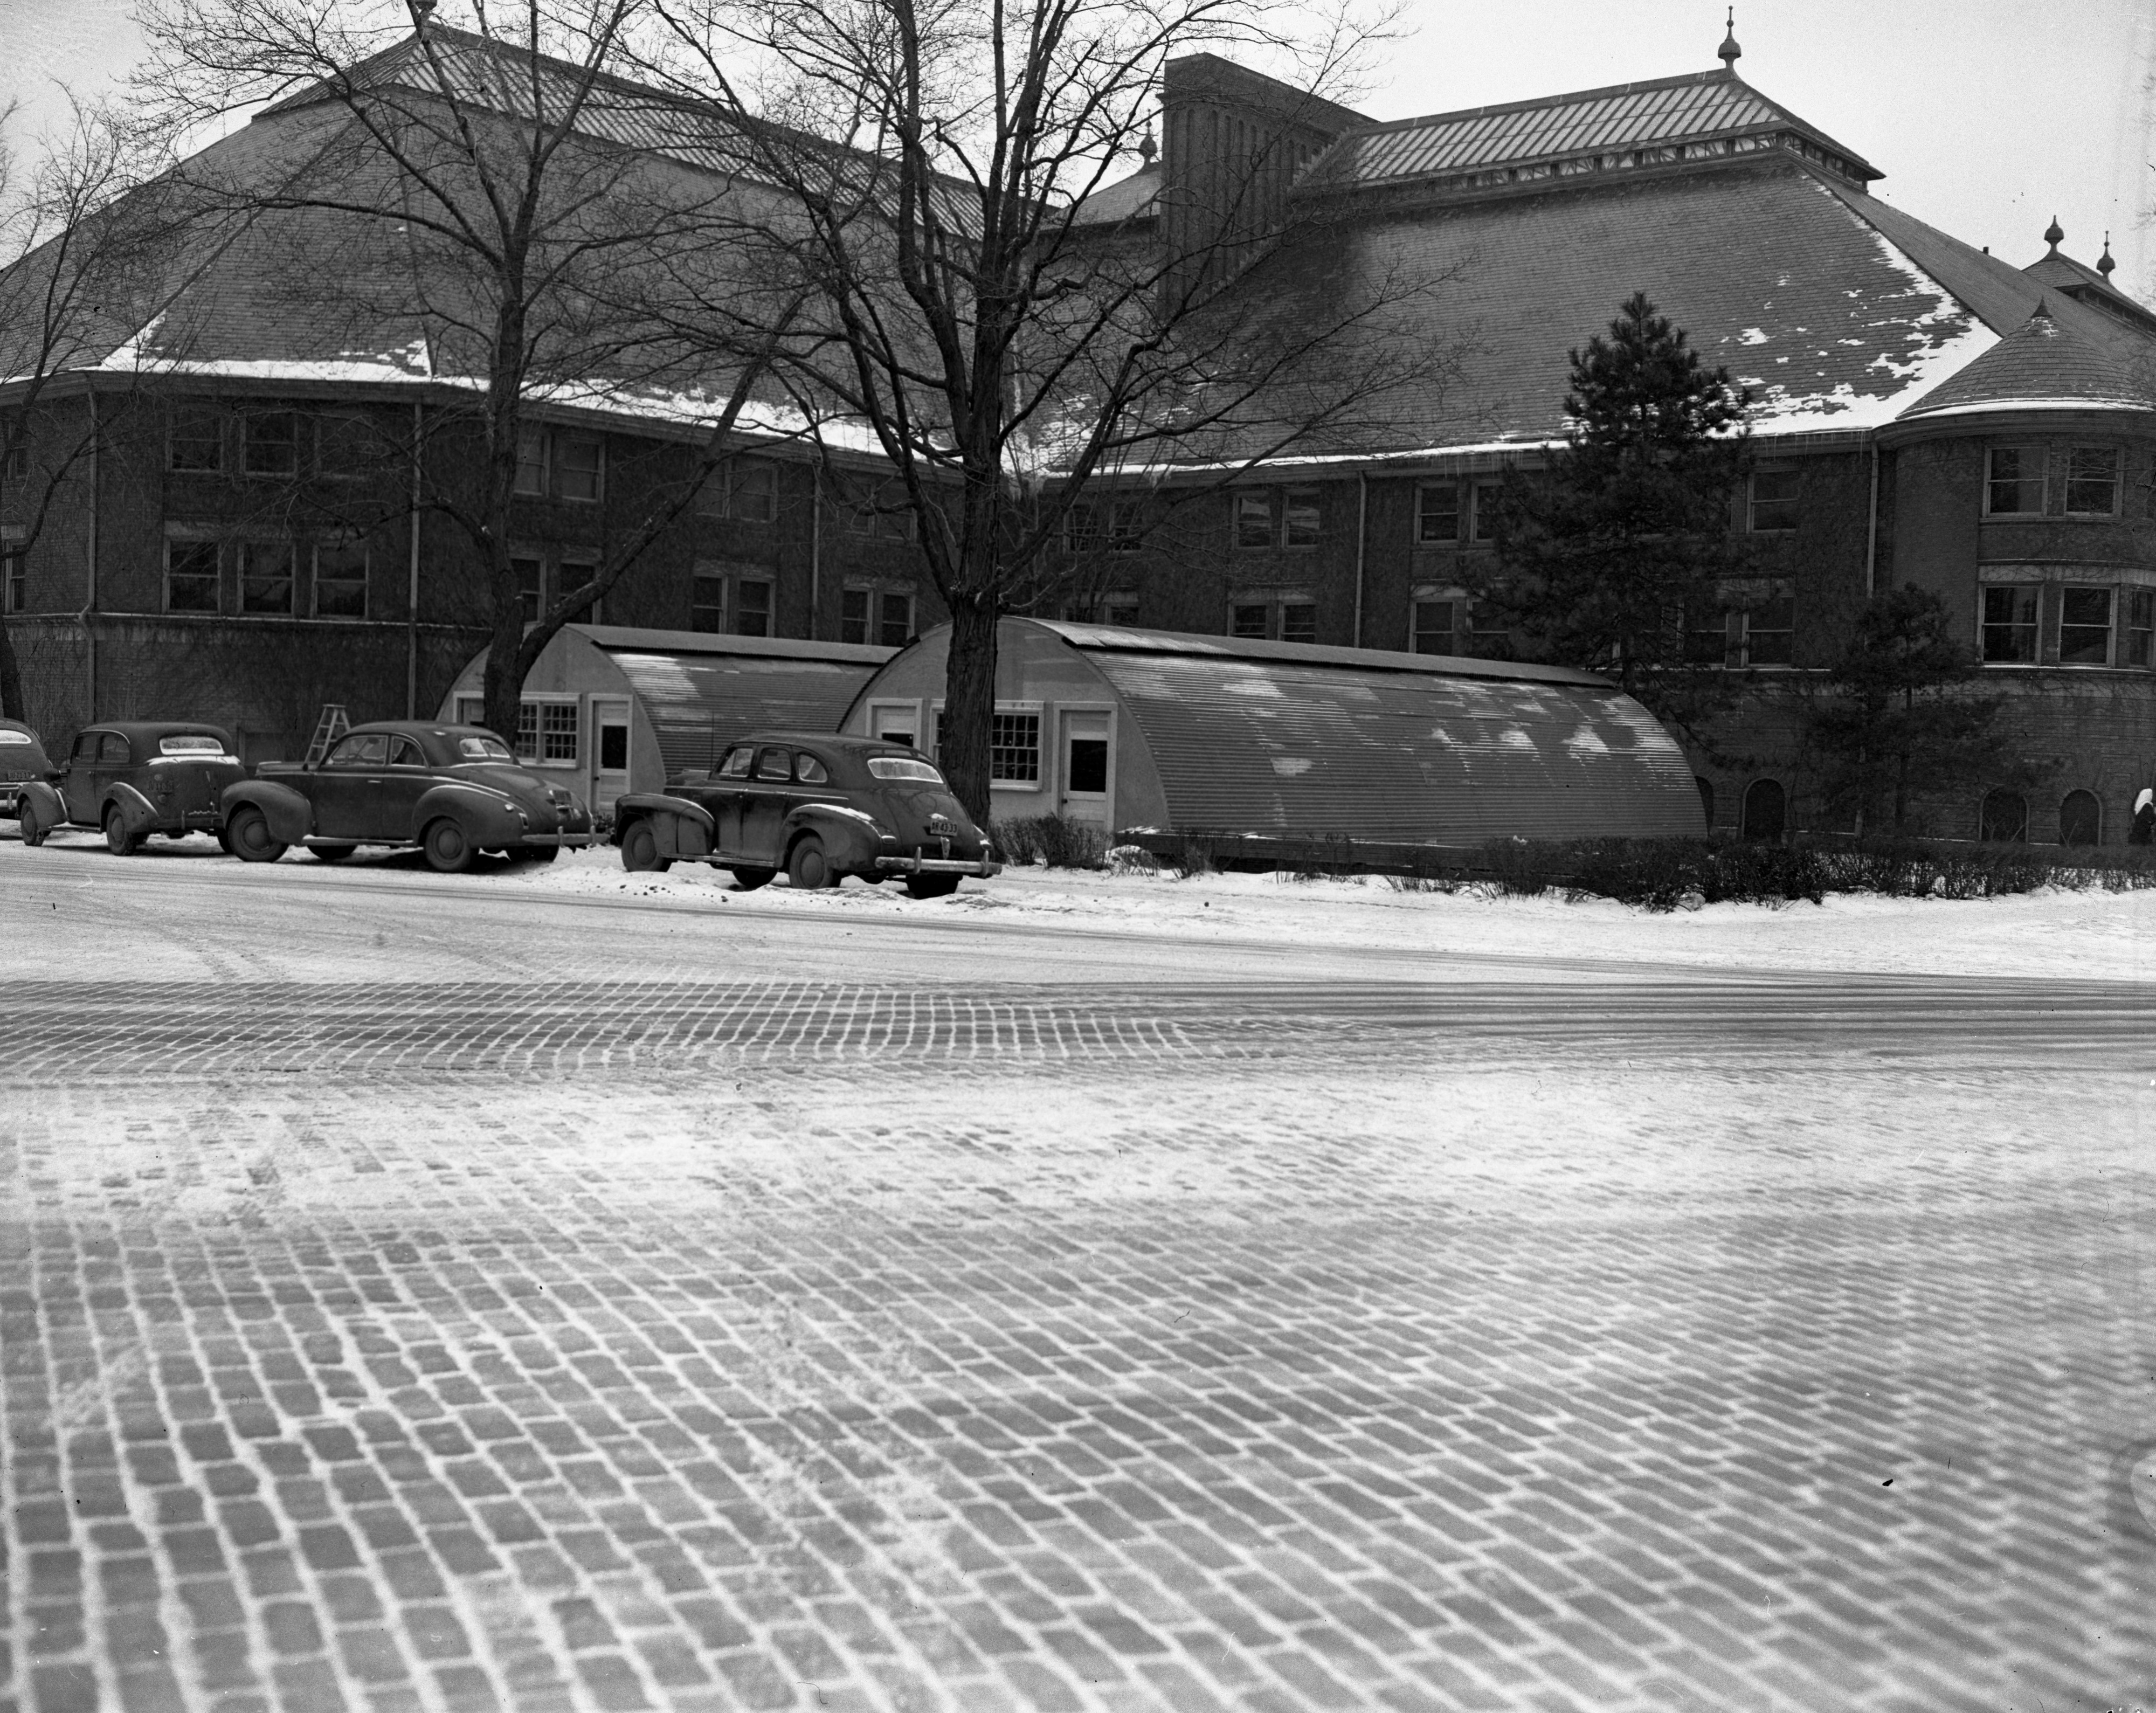 Quonset hut housing on U-M campus, February 1947 image